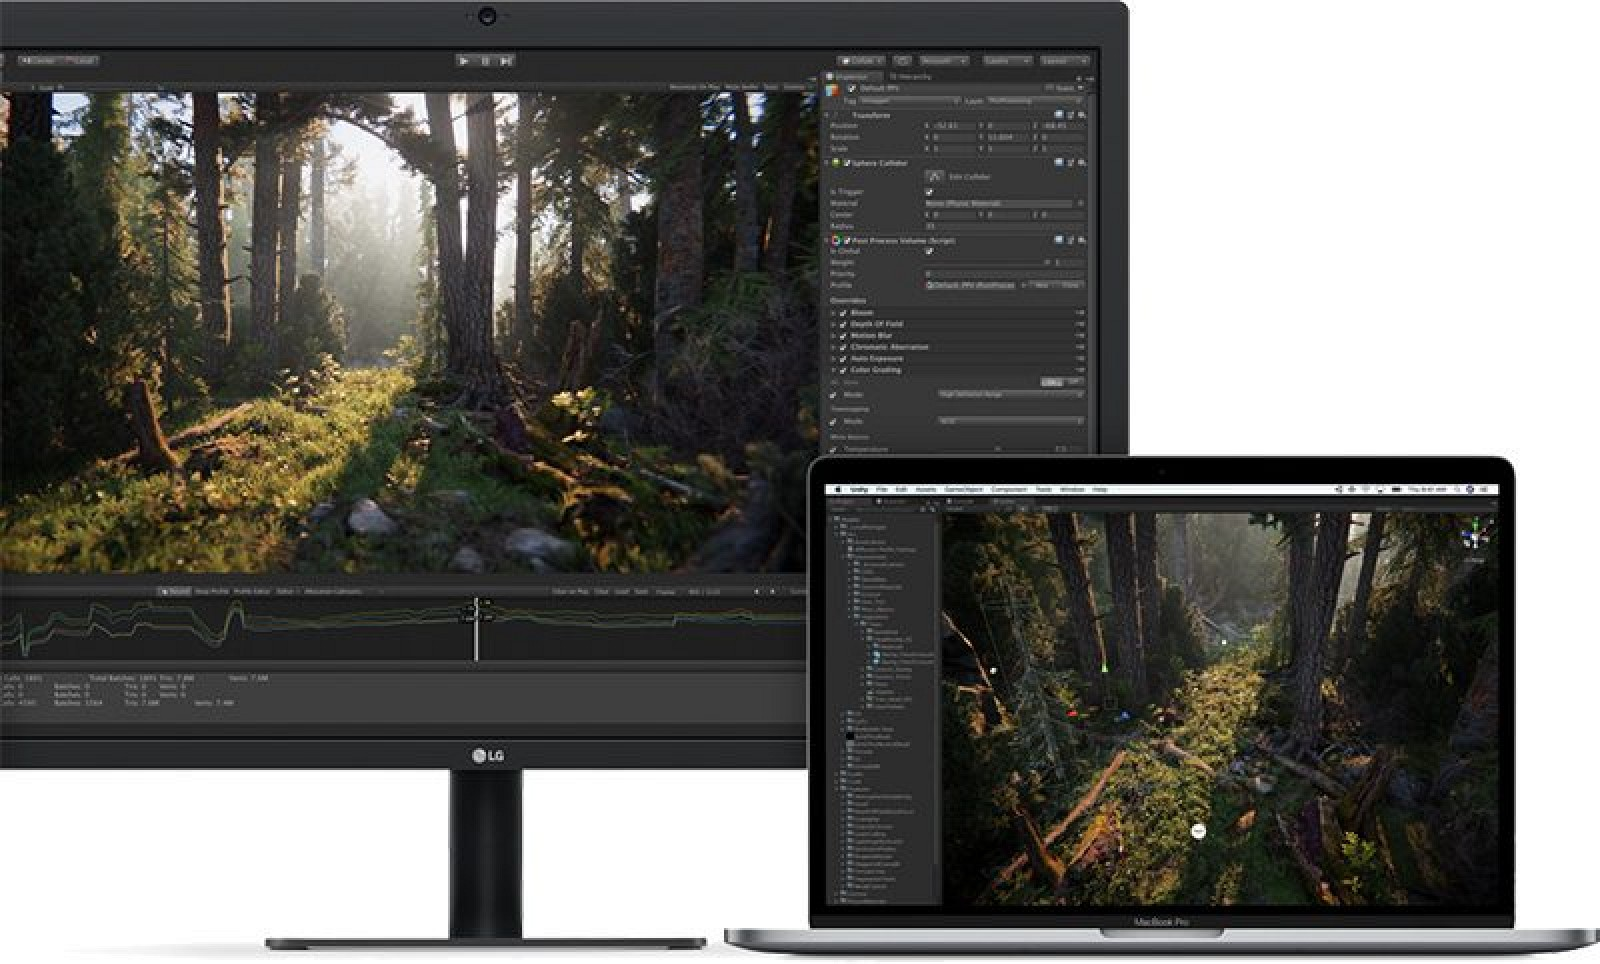 2018 MacBook Pros Have New 'Titan Ridge' Thunderbolt 3 Controller, but DisplayPort 1.4 Isn't Truly Supported